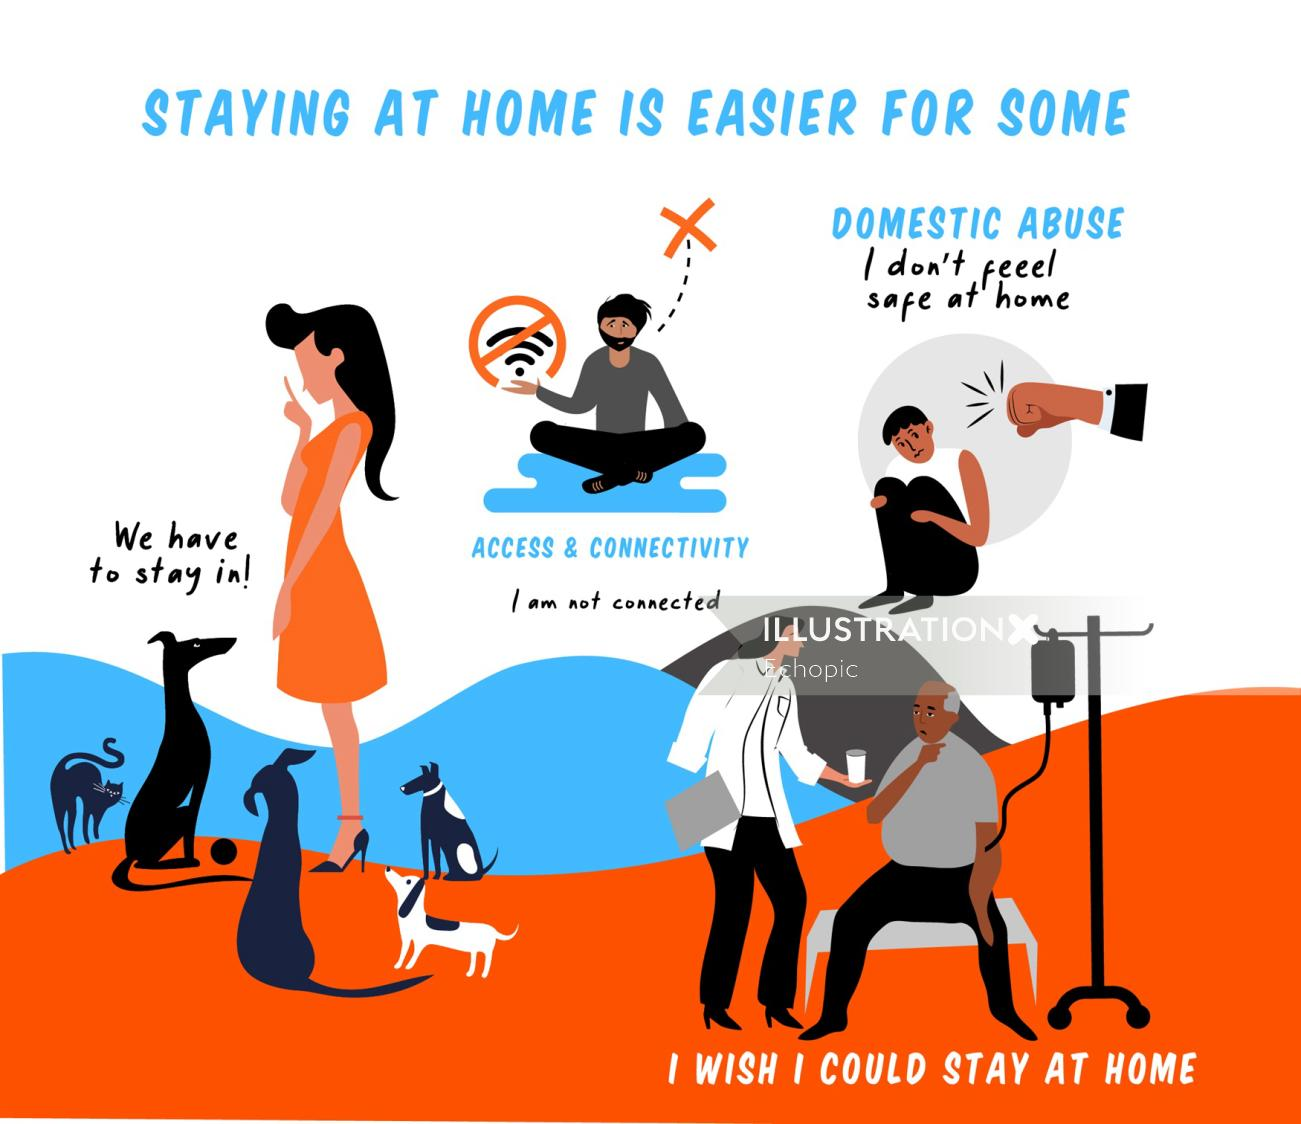 Infographic of staying at home is easier for some